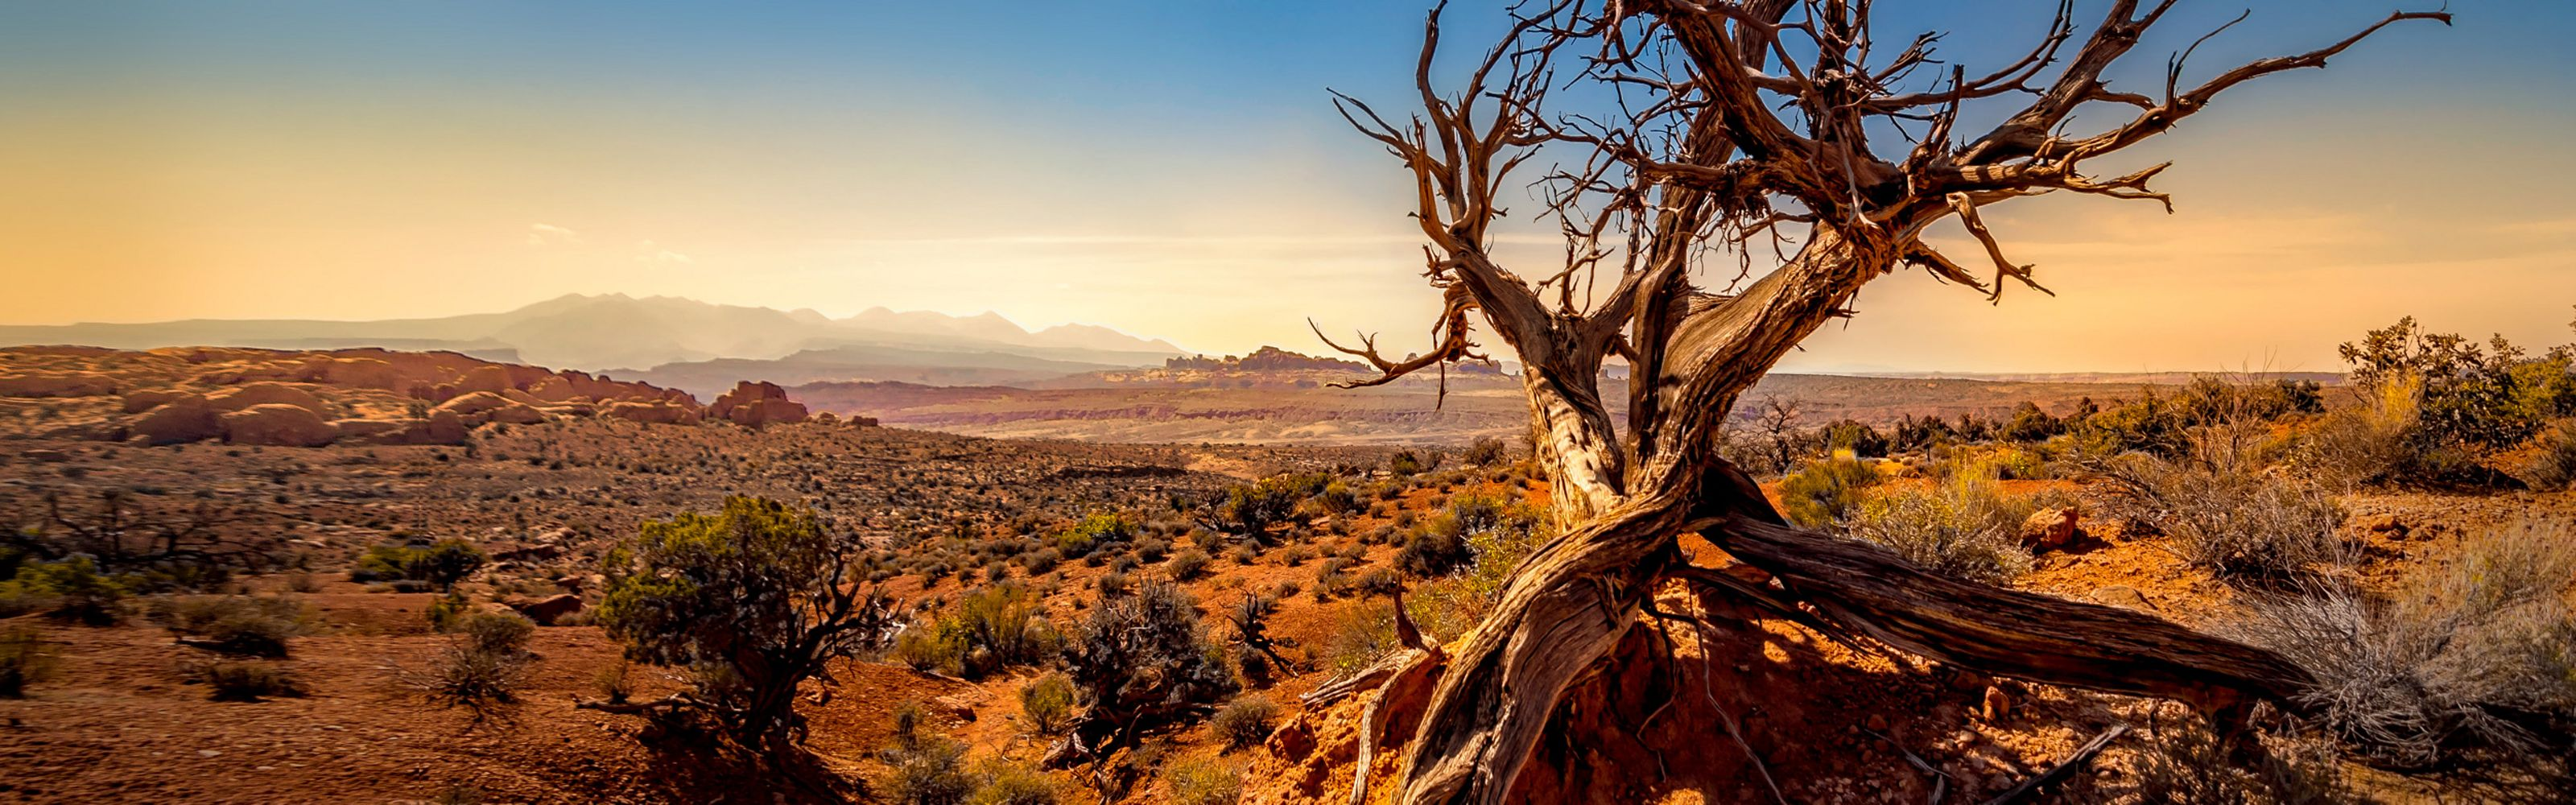 stands watch over Arches National Park in Southern Utah. This tree has twisted in the elements for longer than any of us has been around.